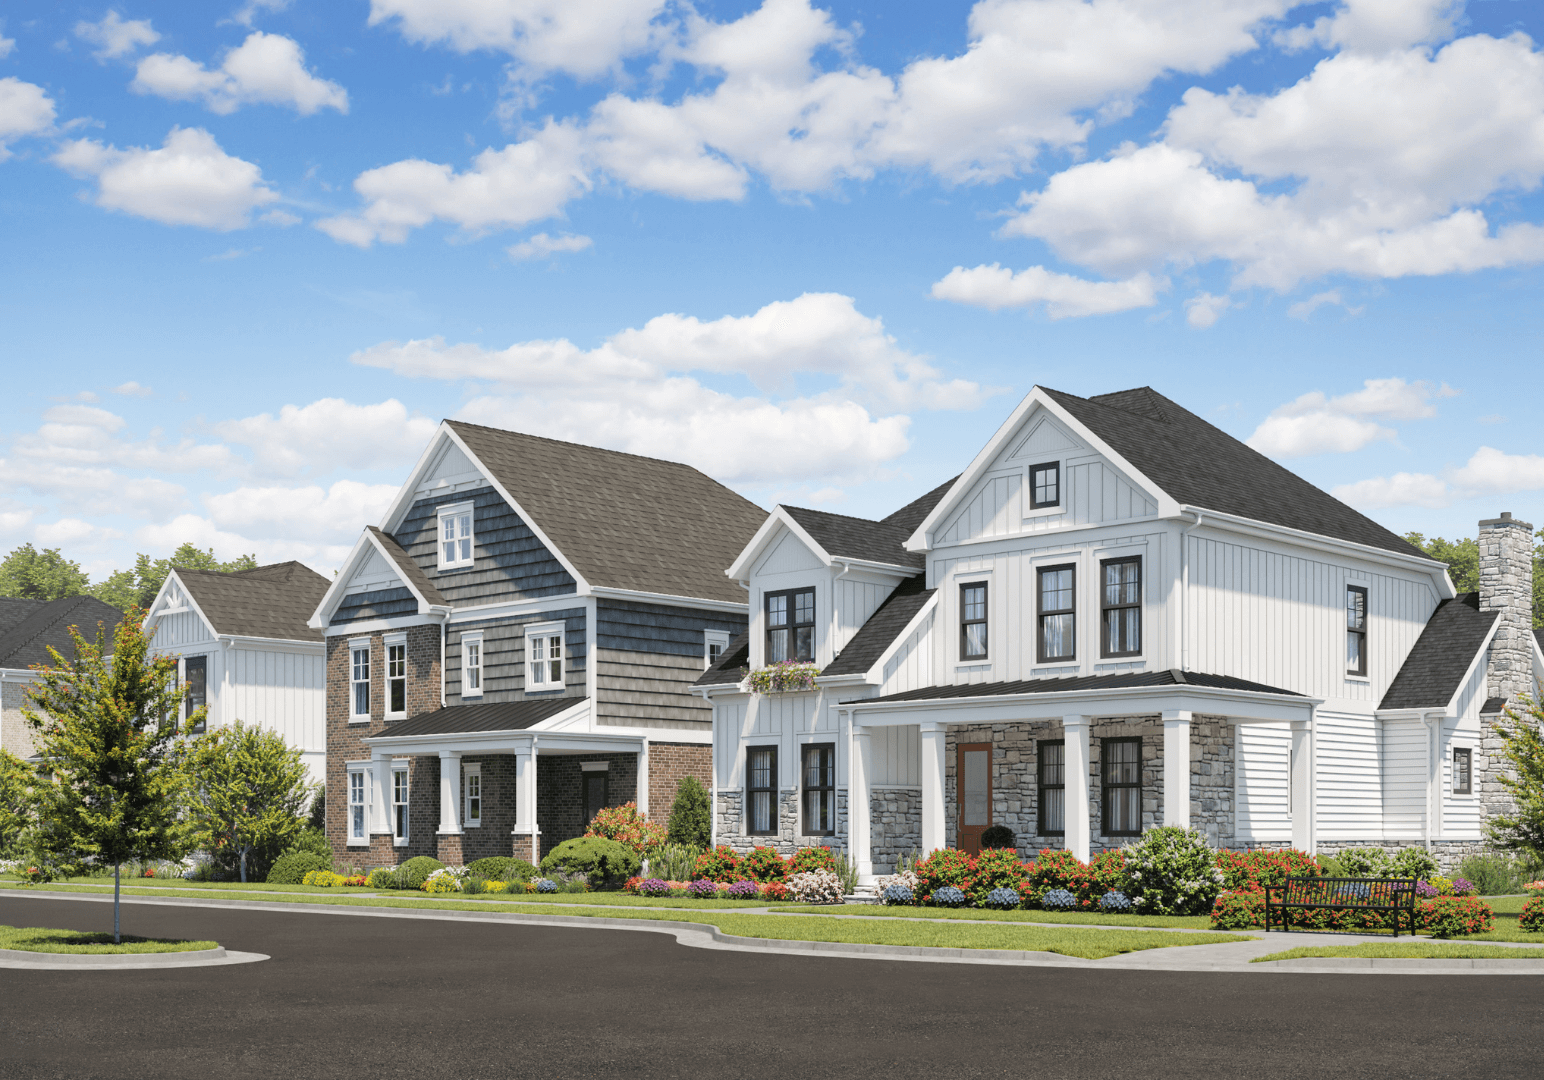 Traditions Home Rendering